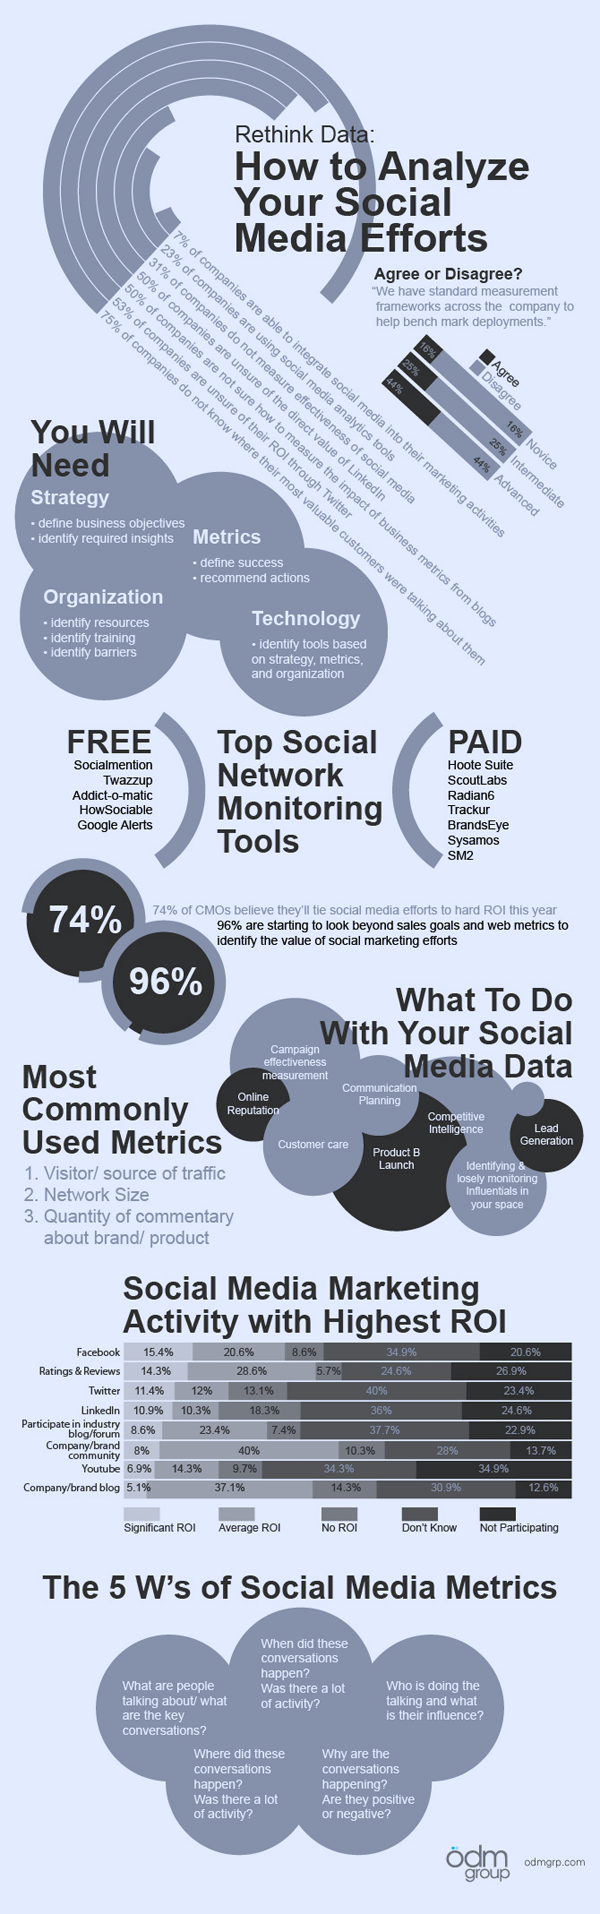 Improve Campaigns Through Social Media Analysis [Infographic]